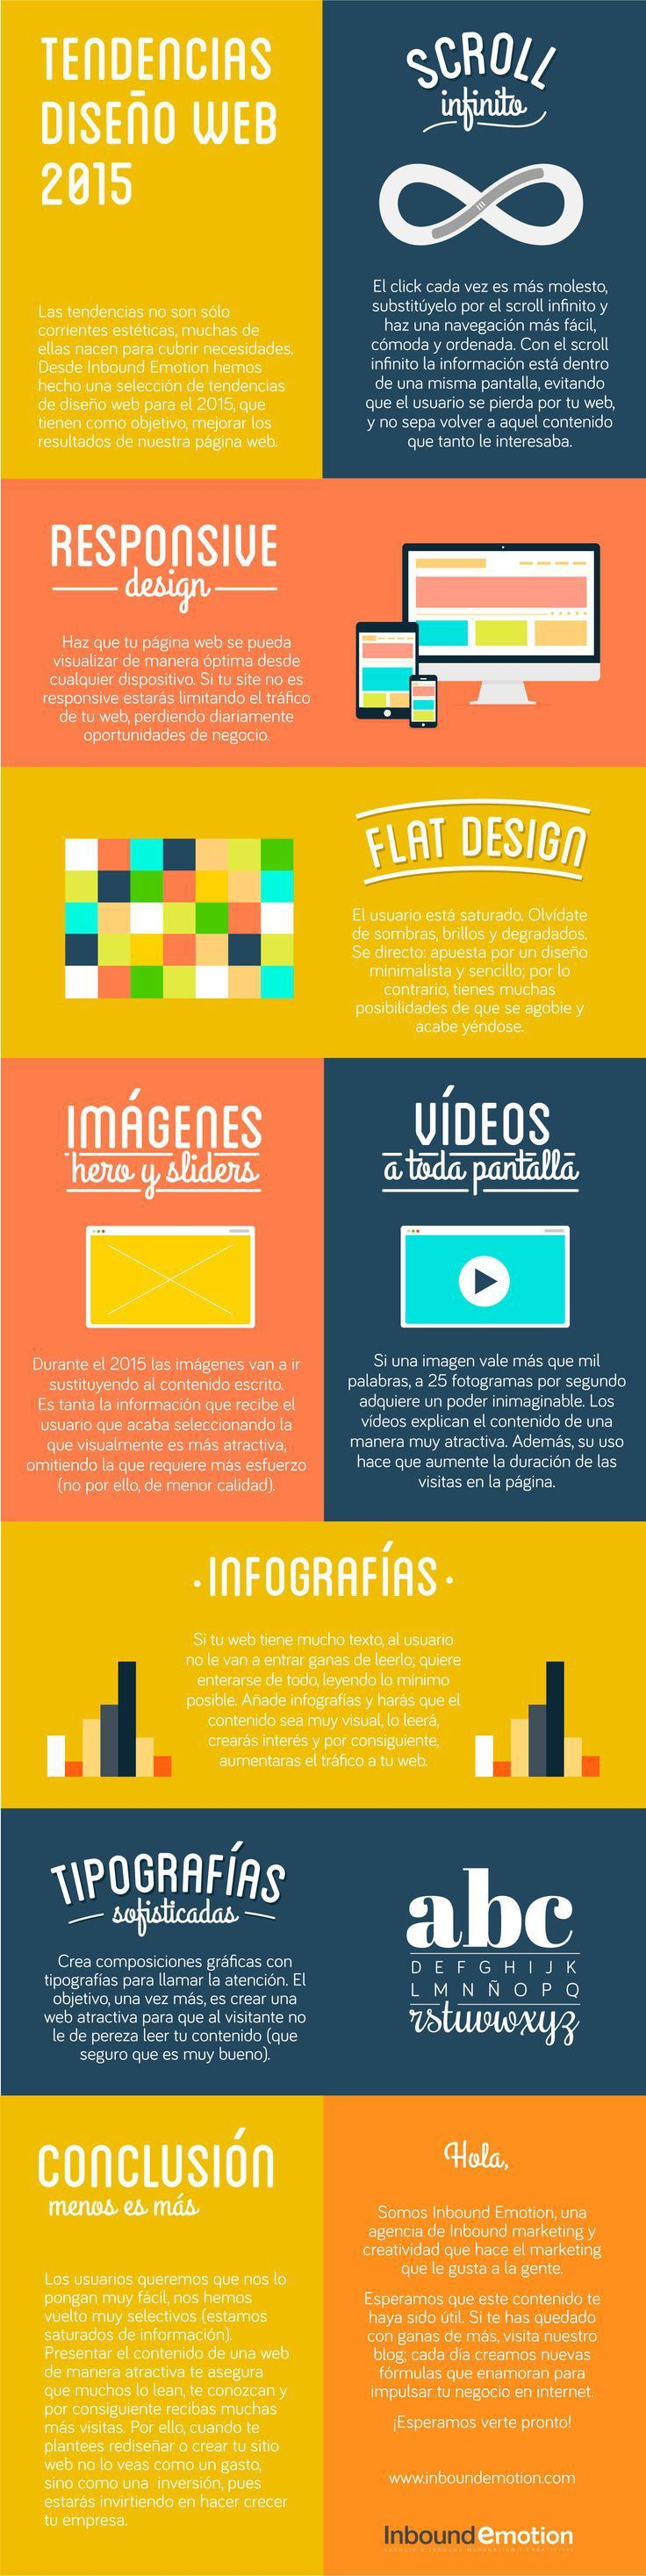 M s de 25 ideas incre bles sobre tendencias de dise o en for Ideas para diseno grafico